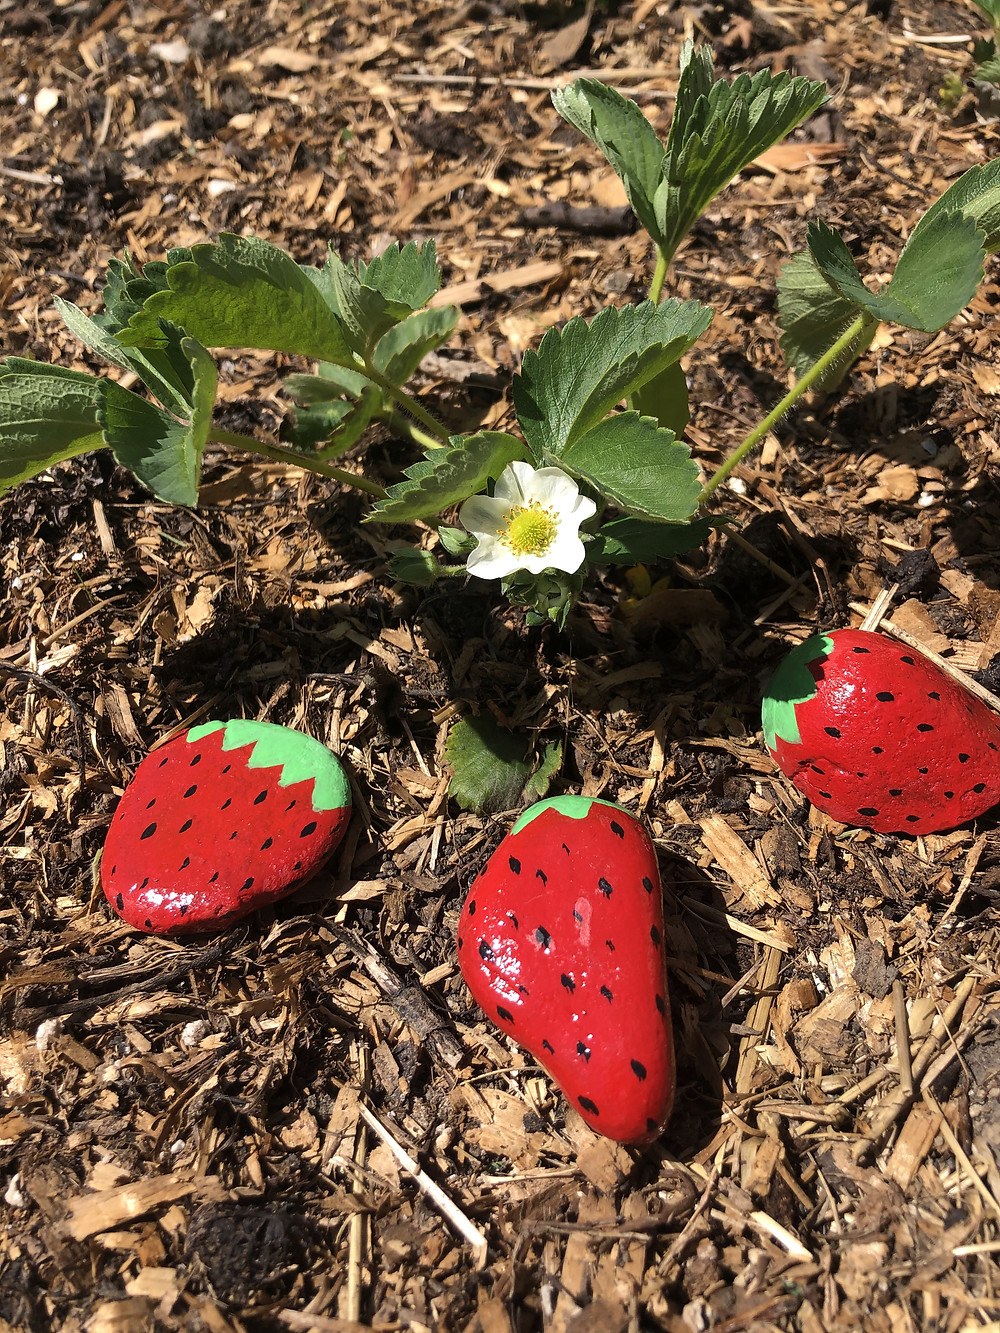 Rocks painted like strawberries placed beside a strawberry plant grown in zone 3, Alberta, Canada in a backyard vegetable garden.